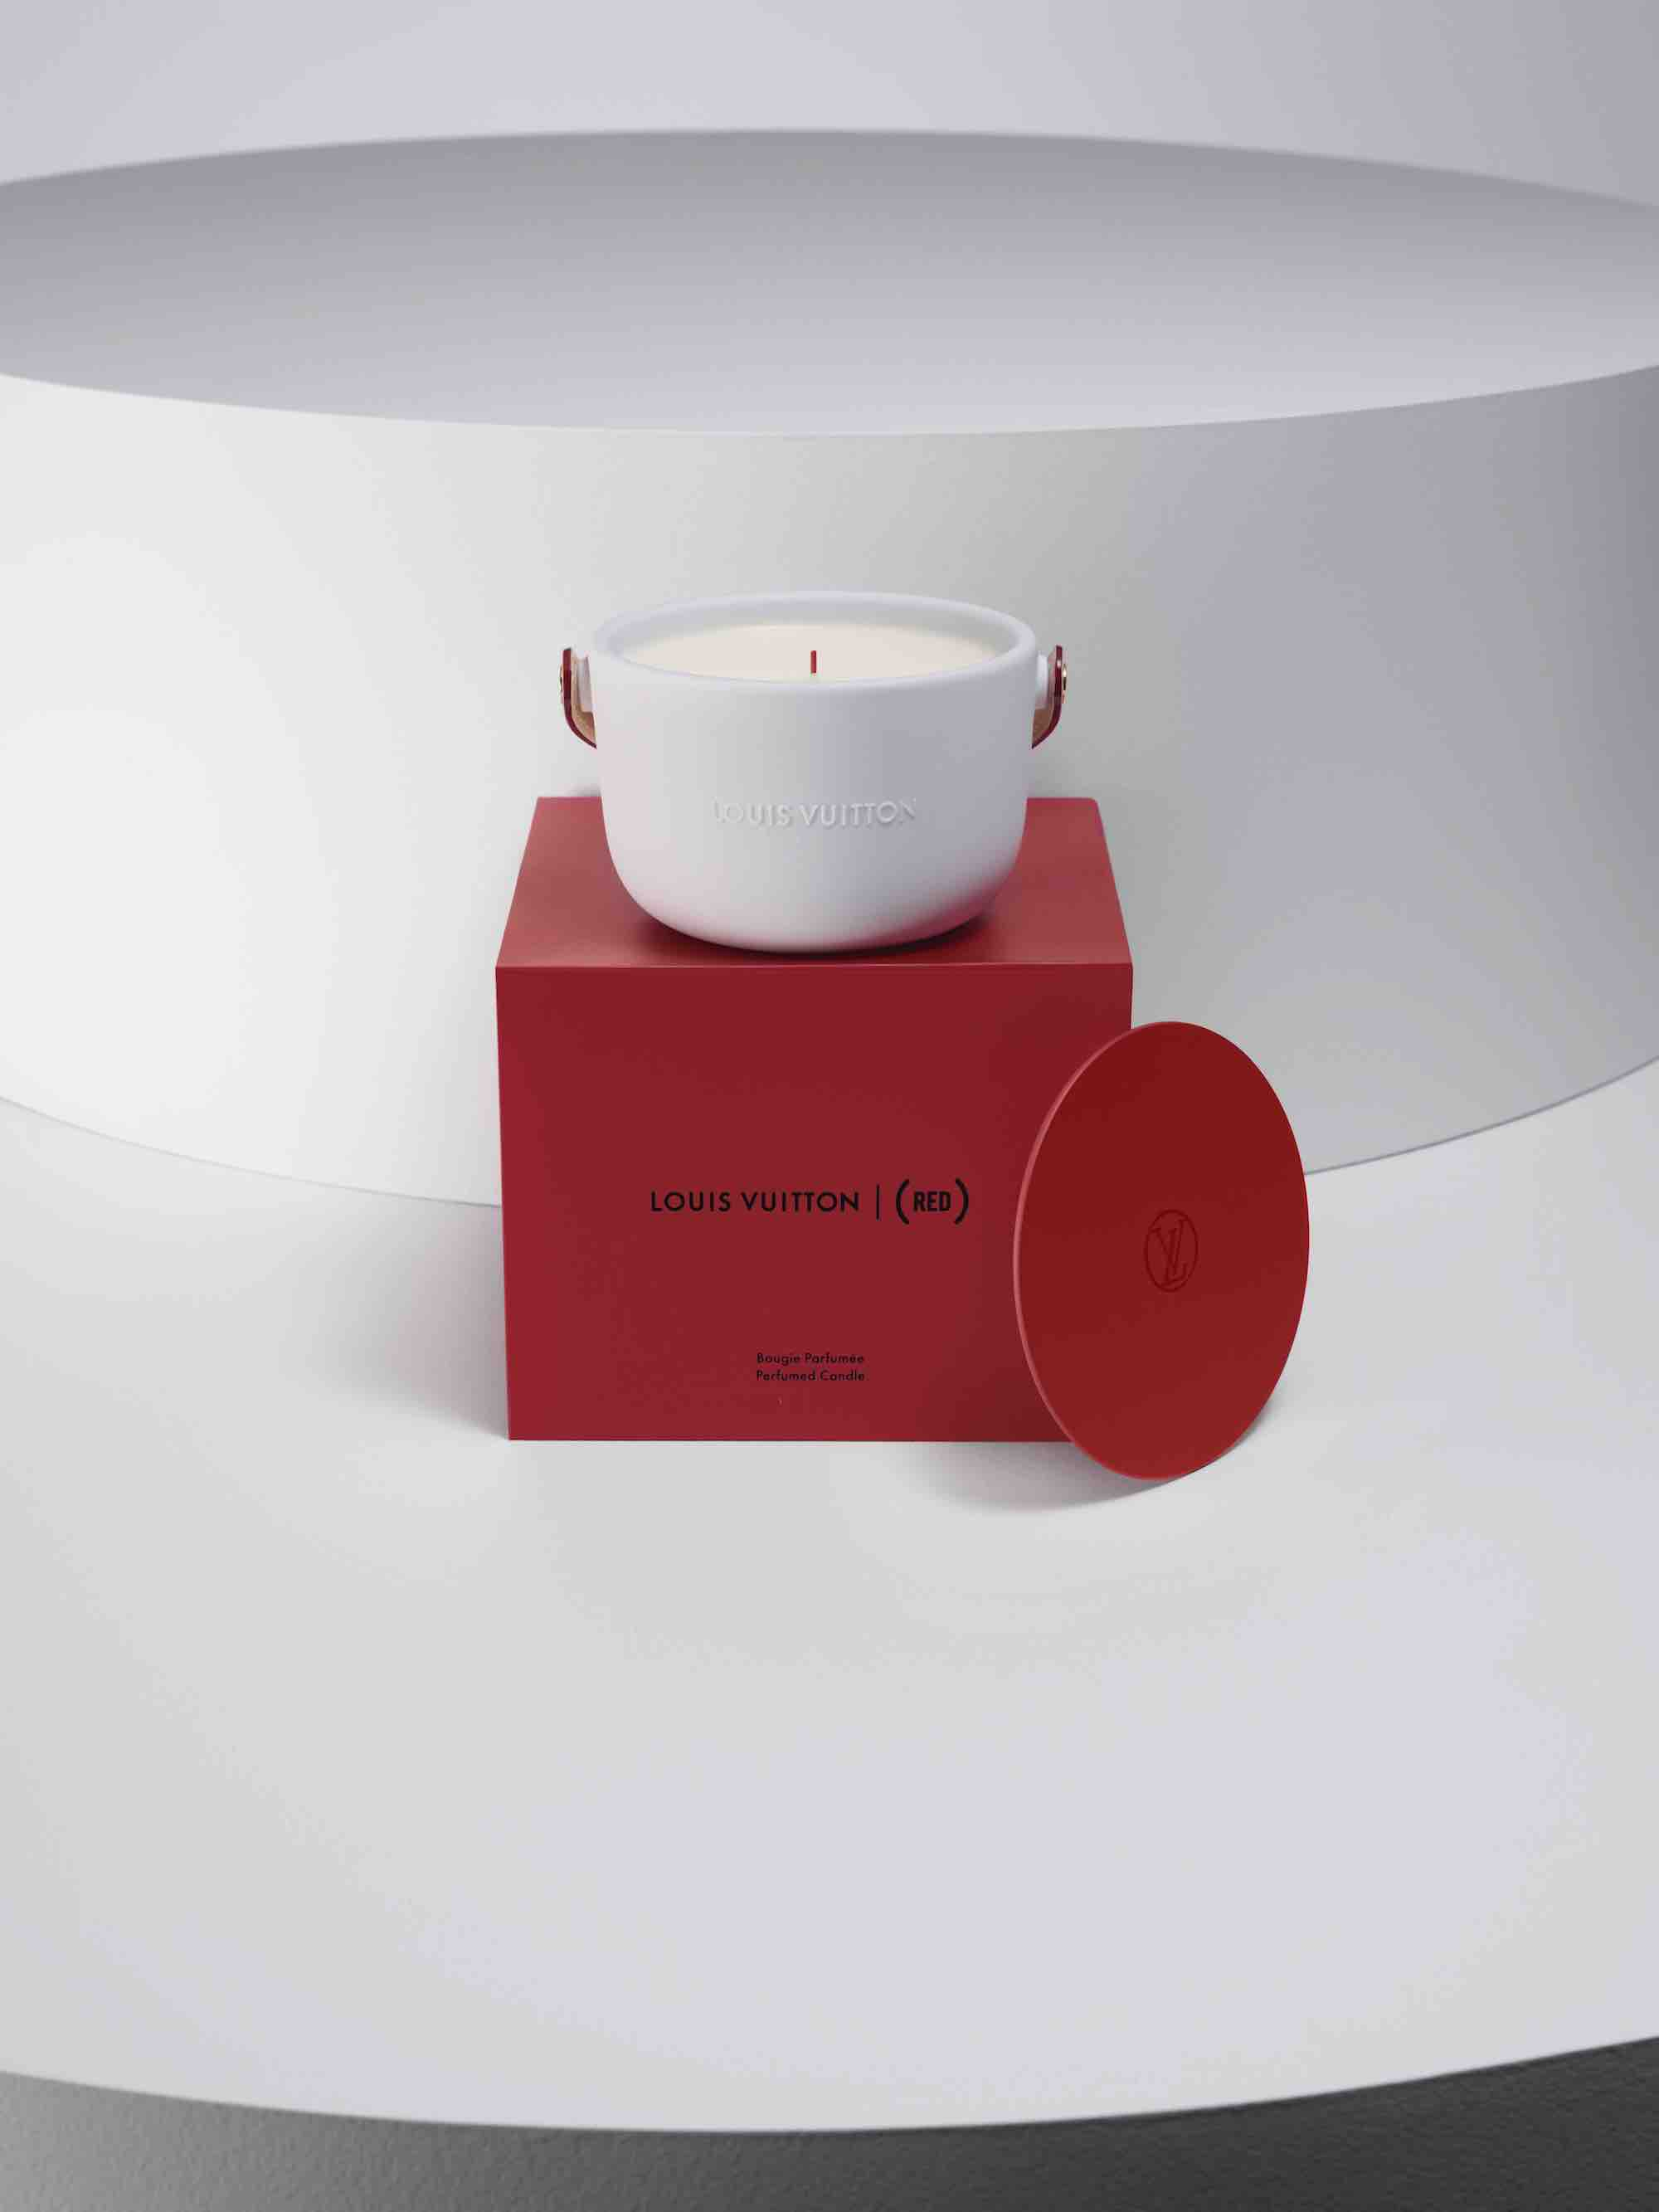 LOUIS VUITTON I (RED) CANDLE_RVB 02 box